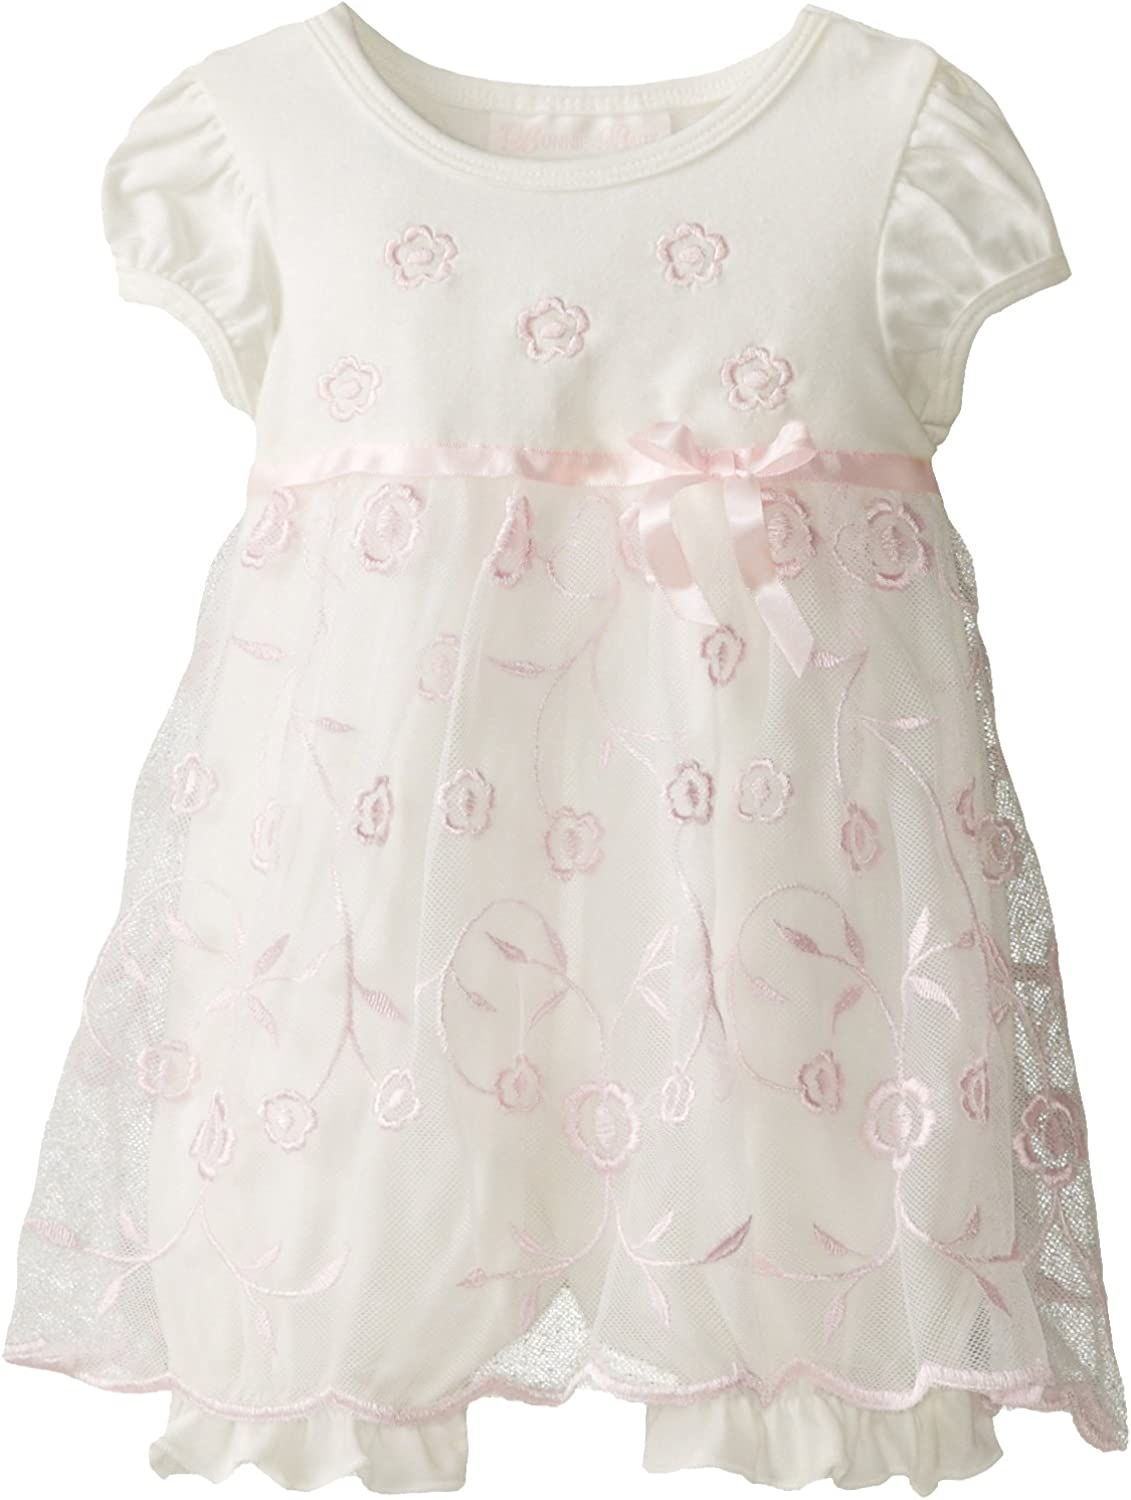 Bonnie Baby Baby-Girls Newborn Allover Embroidered Coverall Dress